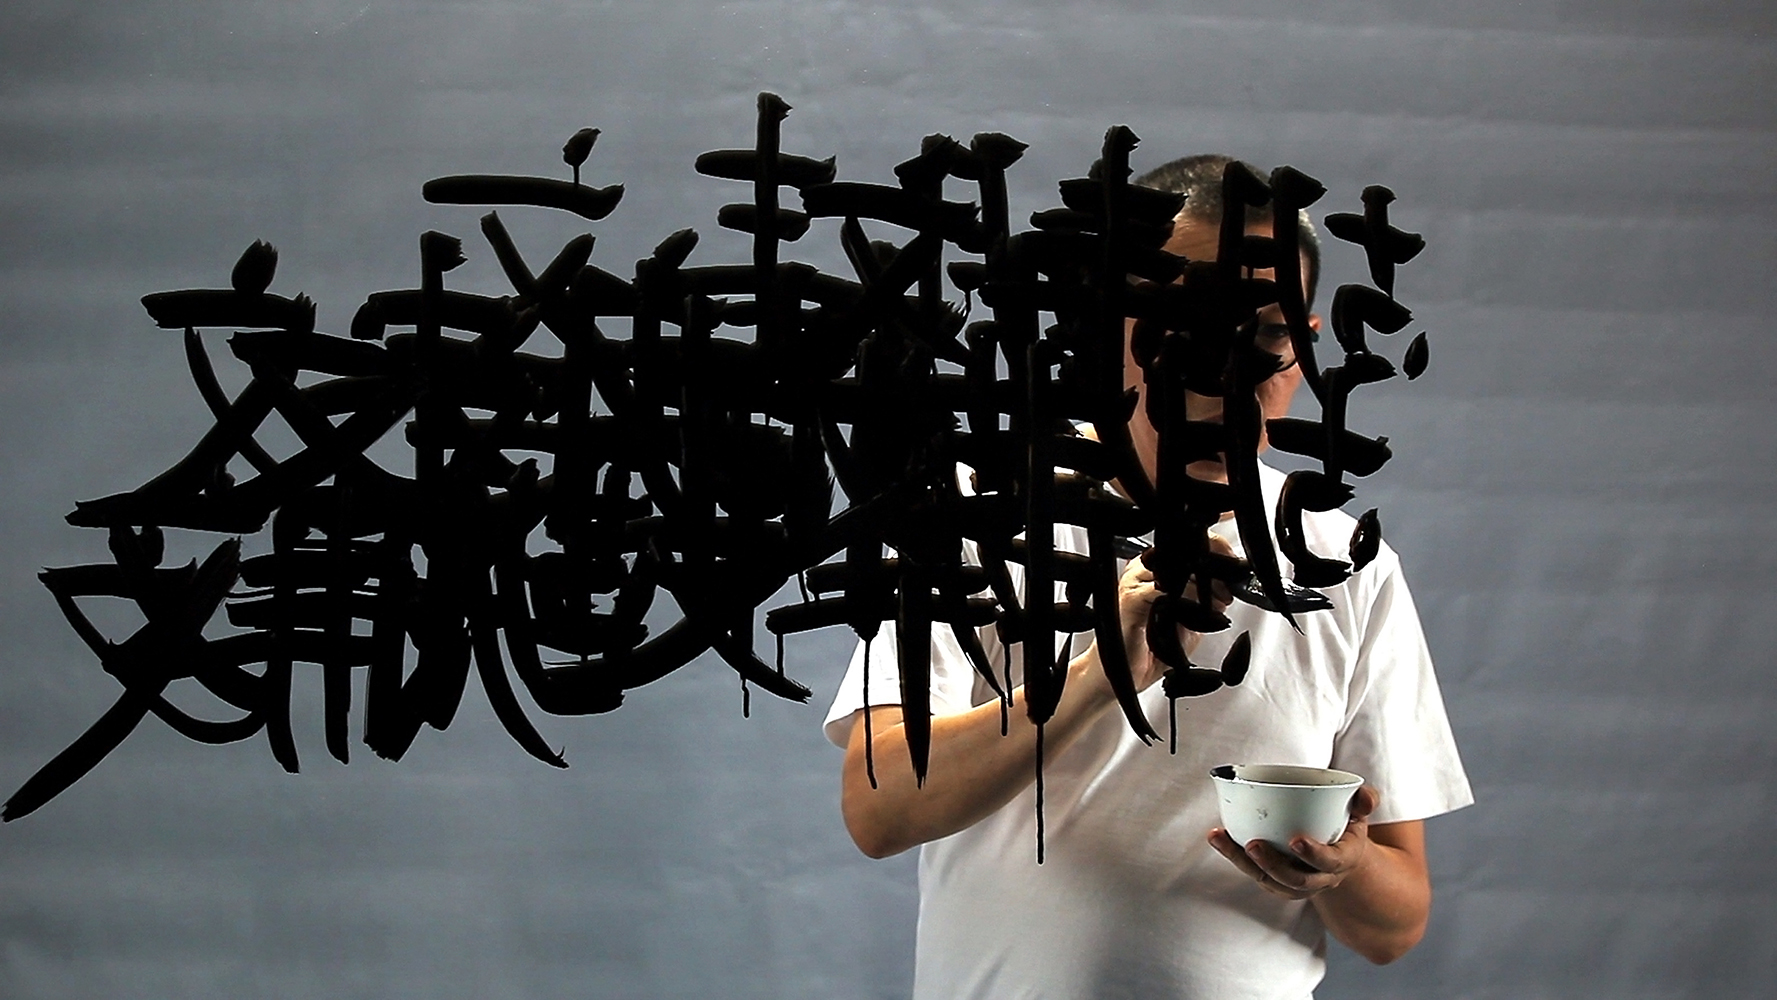 FX Harsono, 𝘞𝘳𝘪𝘵𝘪𝘯𝘨 𝘪𝘯 𝘵𝘩𝘦 𝘙𝘢𝘪𝘯, video still, 2011, courtesy the artist and Museum of Contemporary Photography